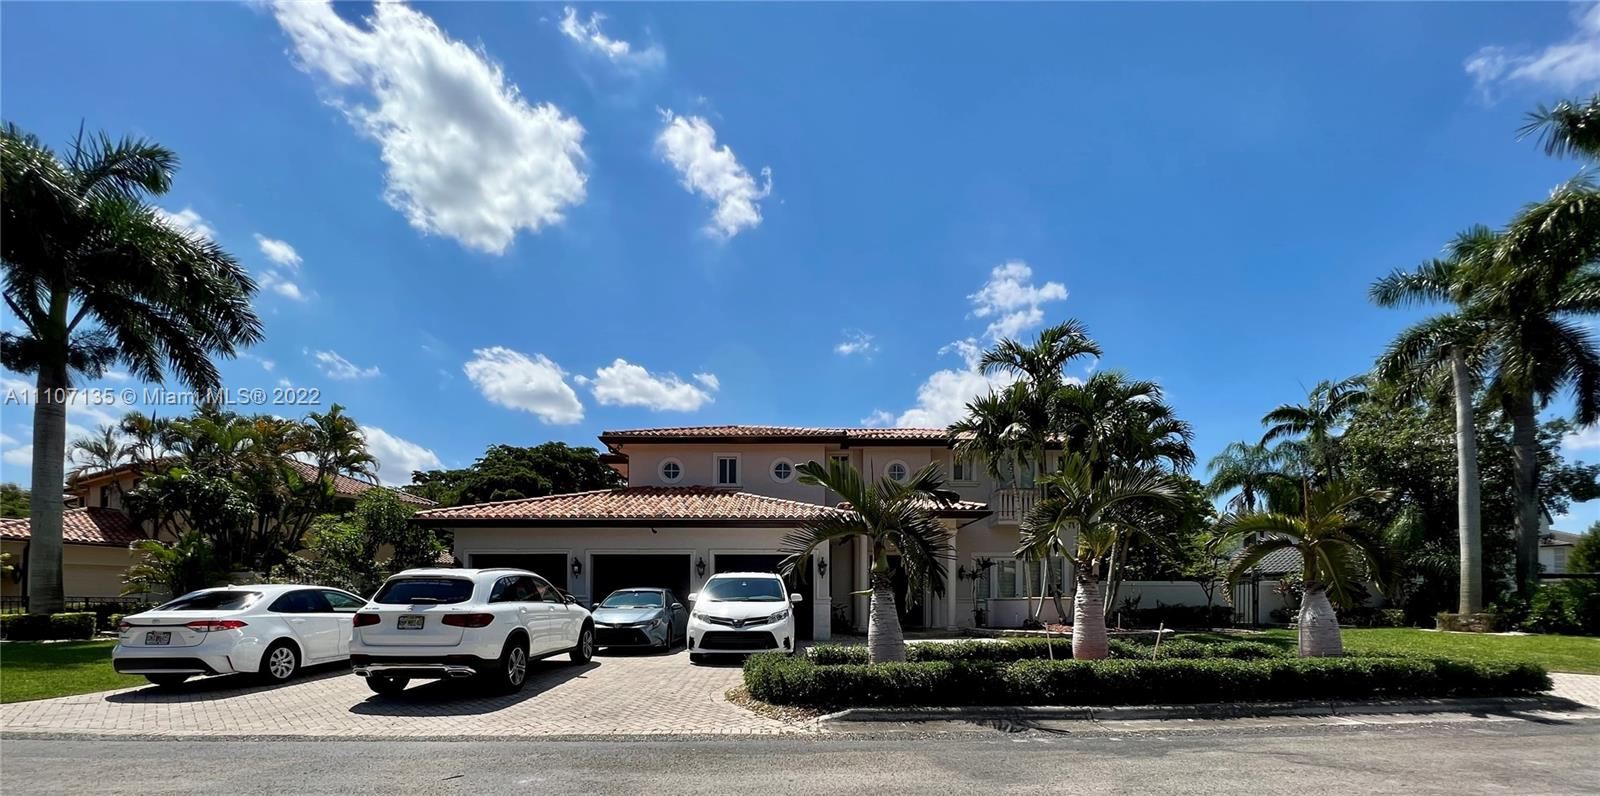 Live at this gorgeous home nestled in a quiet street in the exclusive community of Doral Estates in Doral.  This 5 bedroom 4.5 baths home features a perfect floor plan for families, top of the line appliances, impact-resistant windows, an expansive master bedroom, marble floor downstairs, wood floor upstairs, heated pool, jacuzzi and much more.